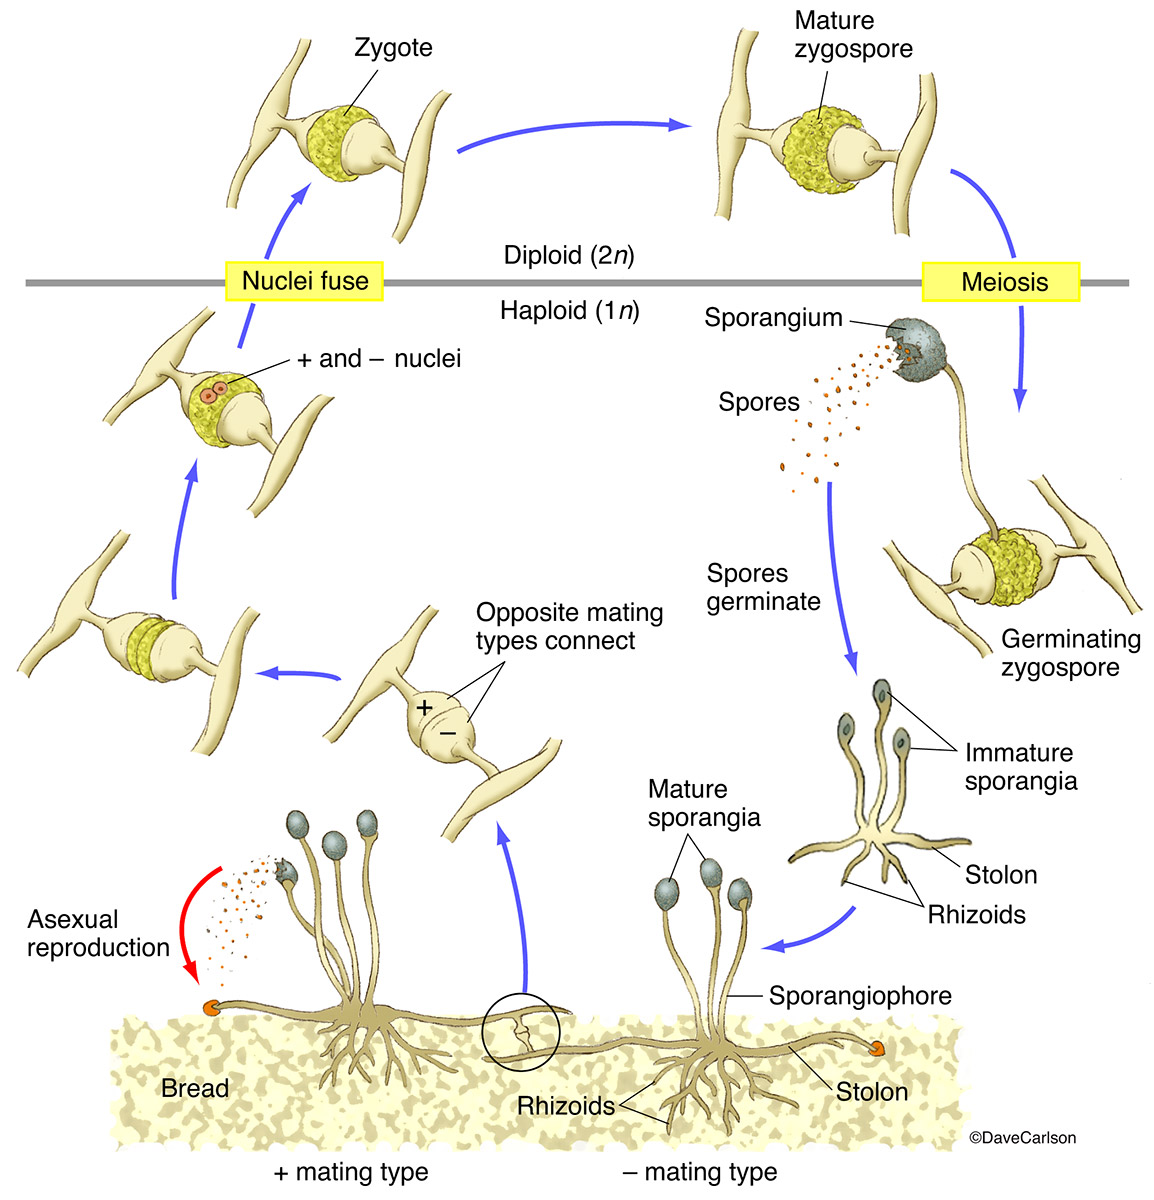 Illustration of the structure and life cycle of bread mold fungus.